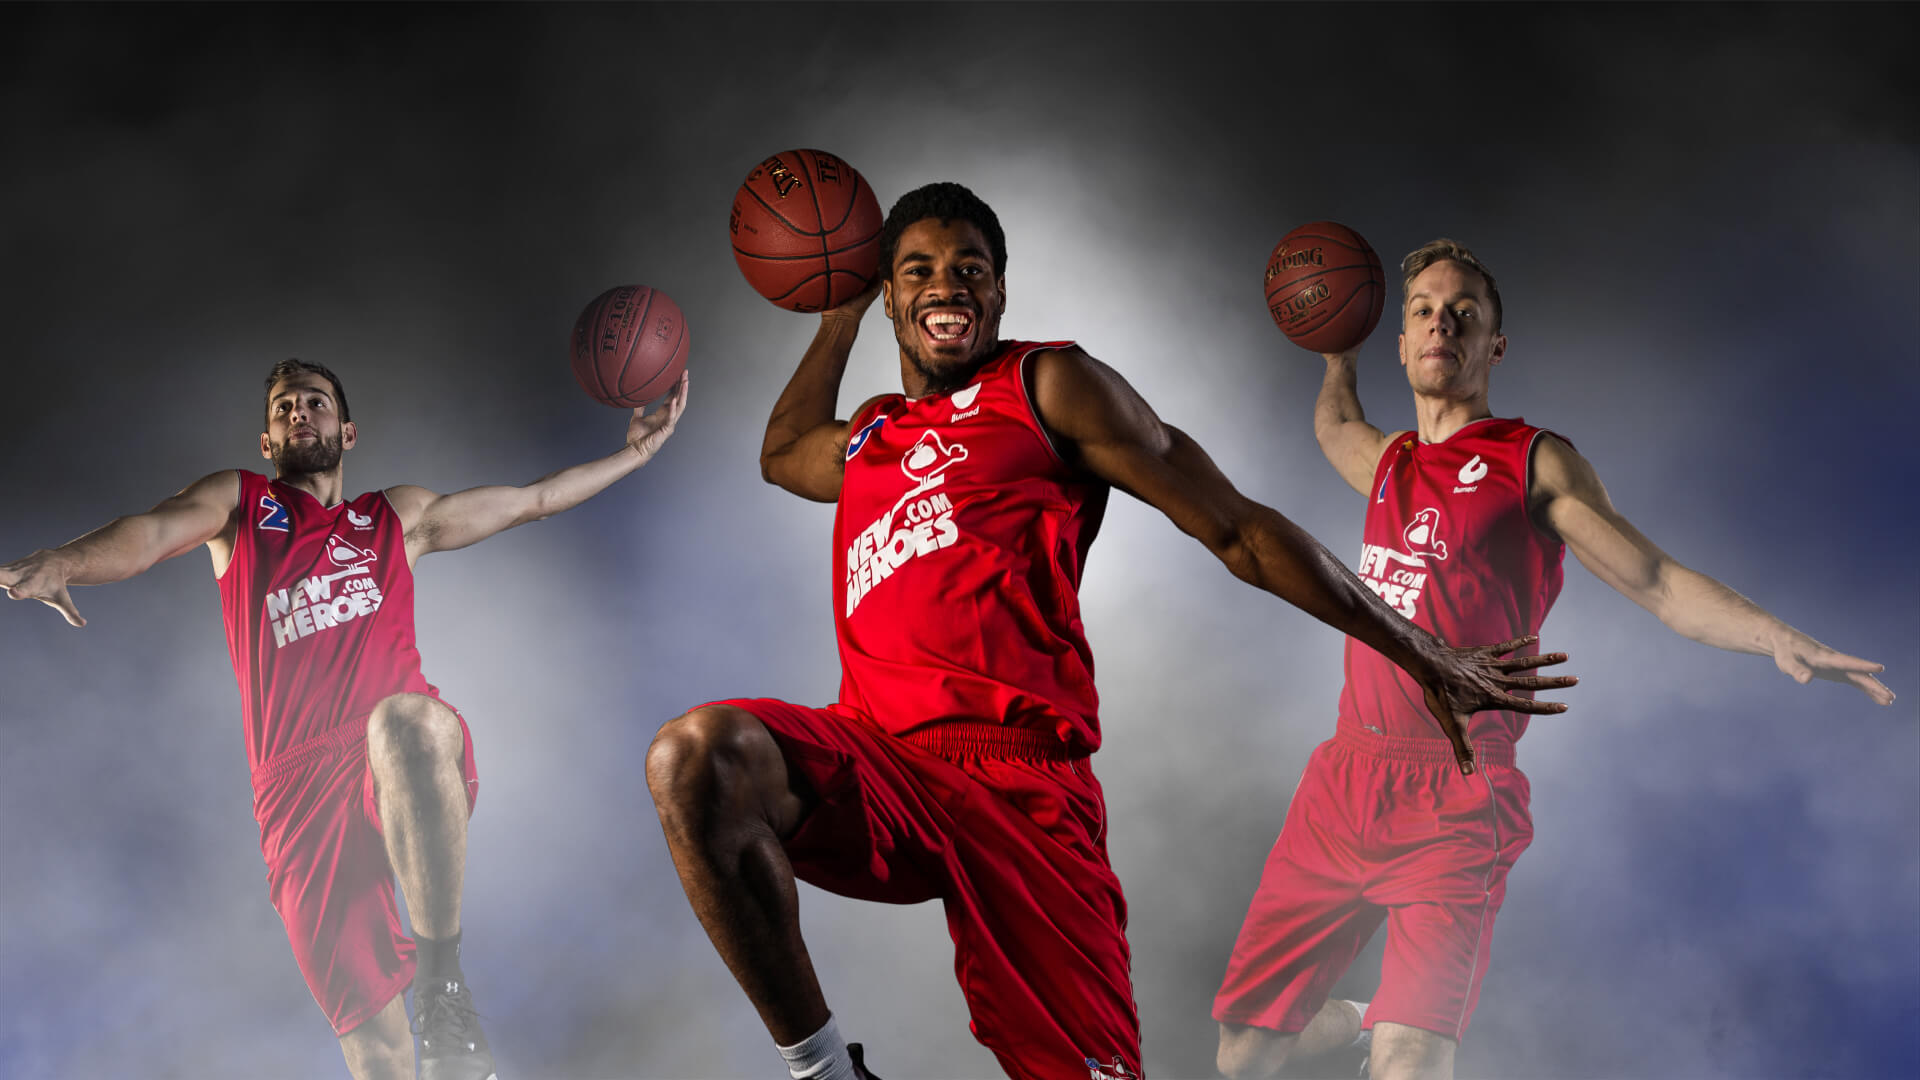 new-heroes-basketbal-header_final.jpg